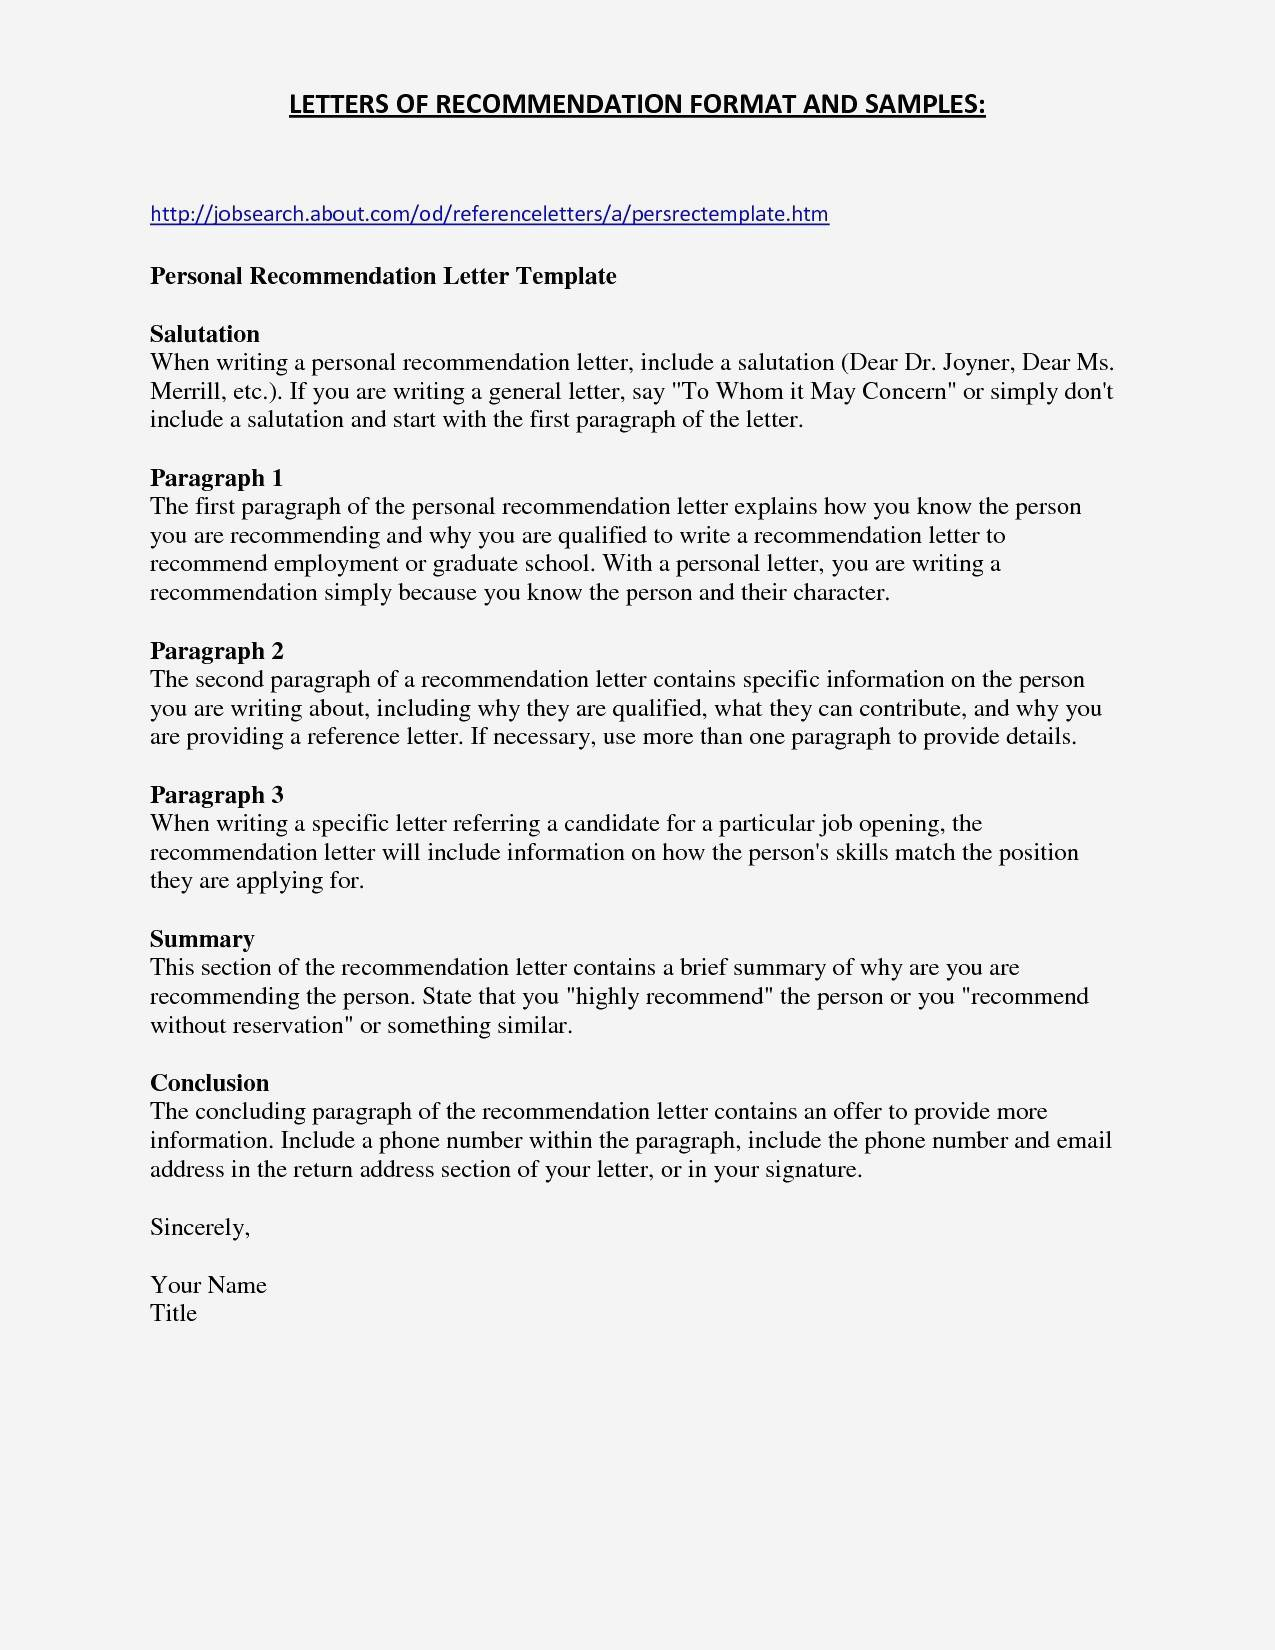 Temple University Resume Template - Temple Resume Gallery Free Resume Templates Word Idées Cv Centre